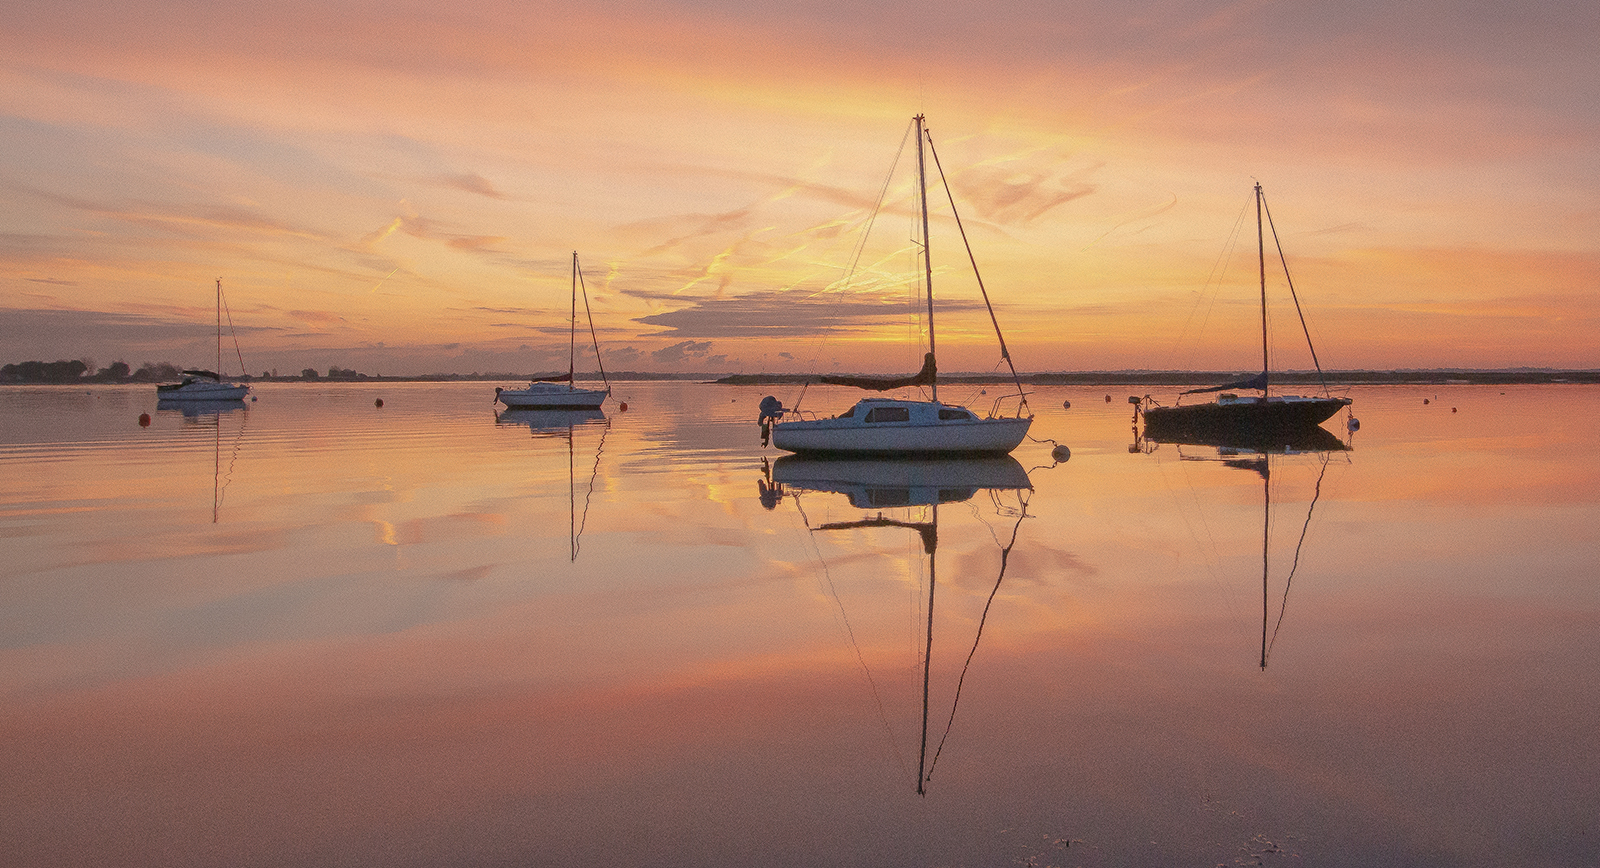 <h5>Heybridge Tranquility at Dawn</h5><p>Trevor Partridge - Beginner																																																	</p>